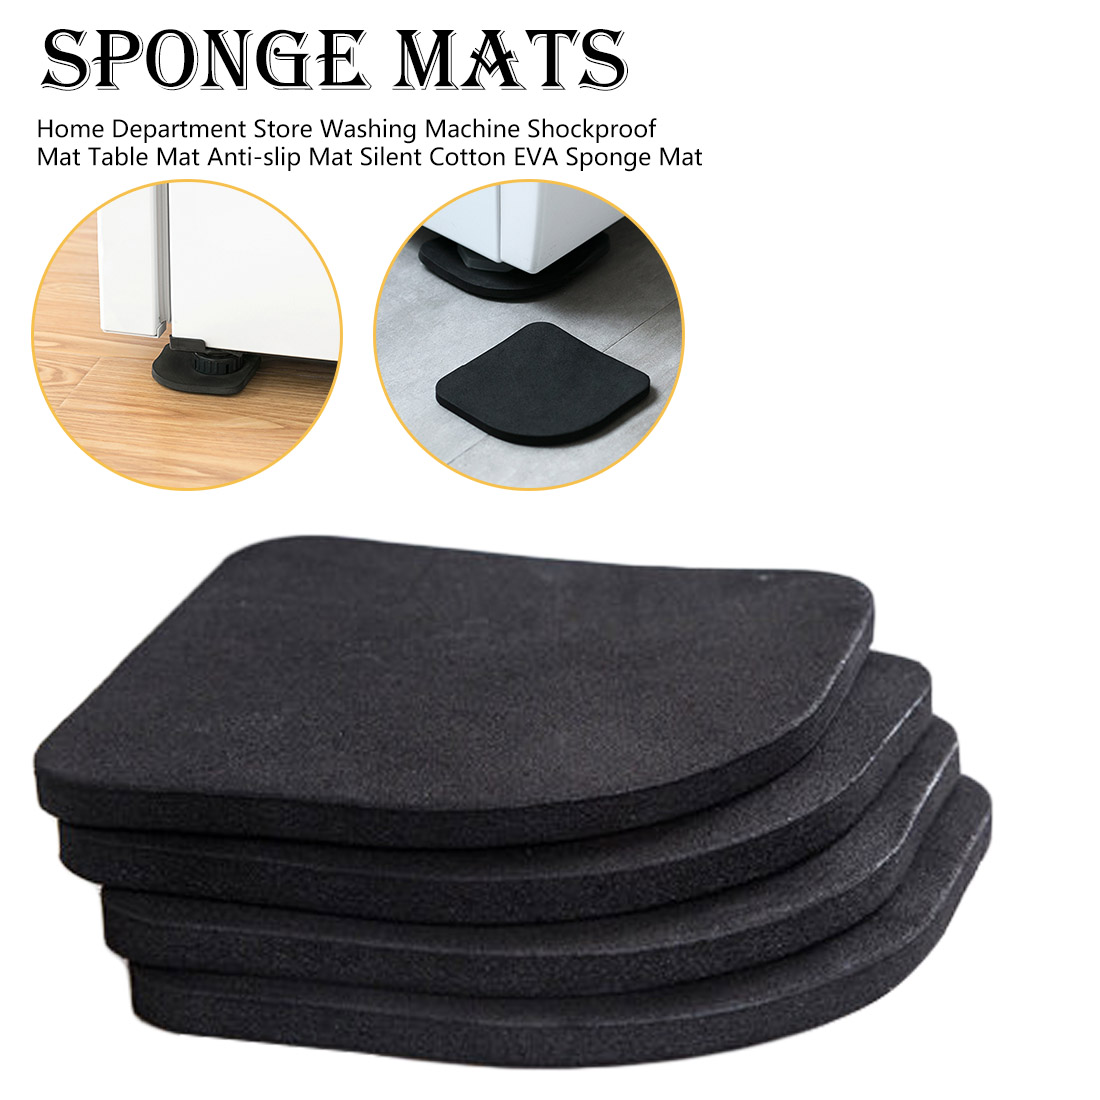 4pcs Non Slip Anti-Vibration Pad For Washing Machine Home Refrigerator Durable Shockproof